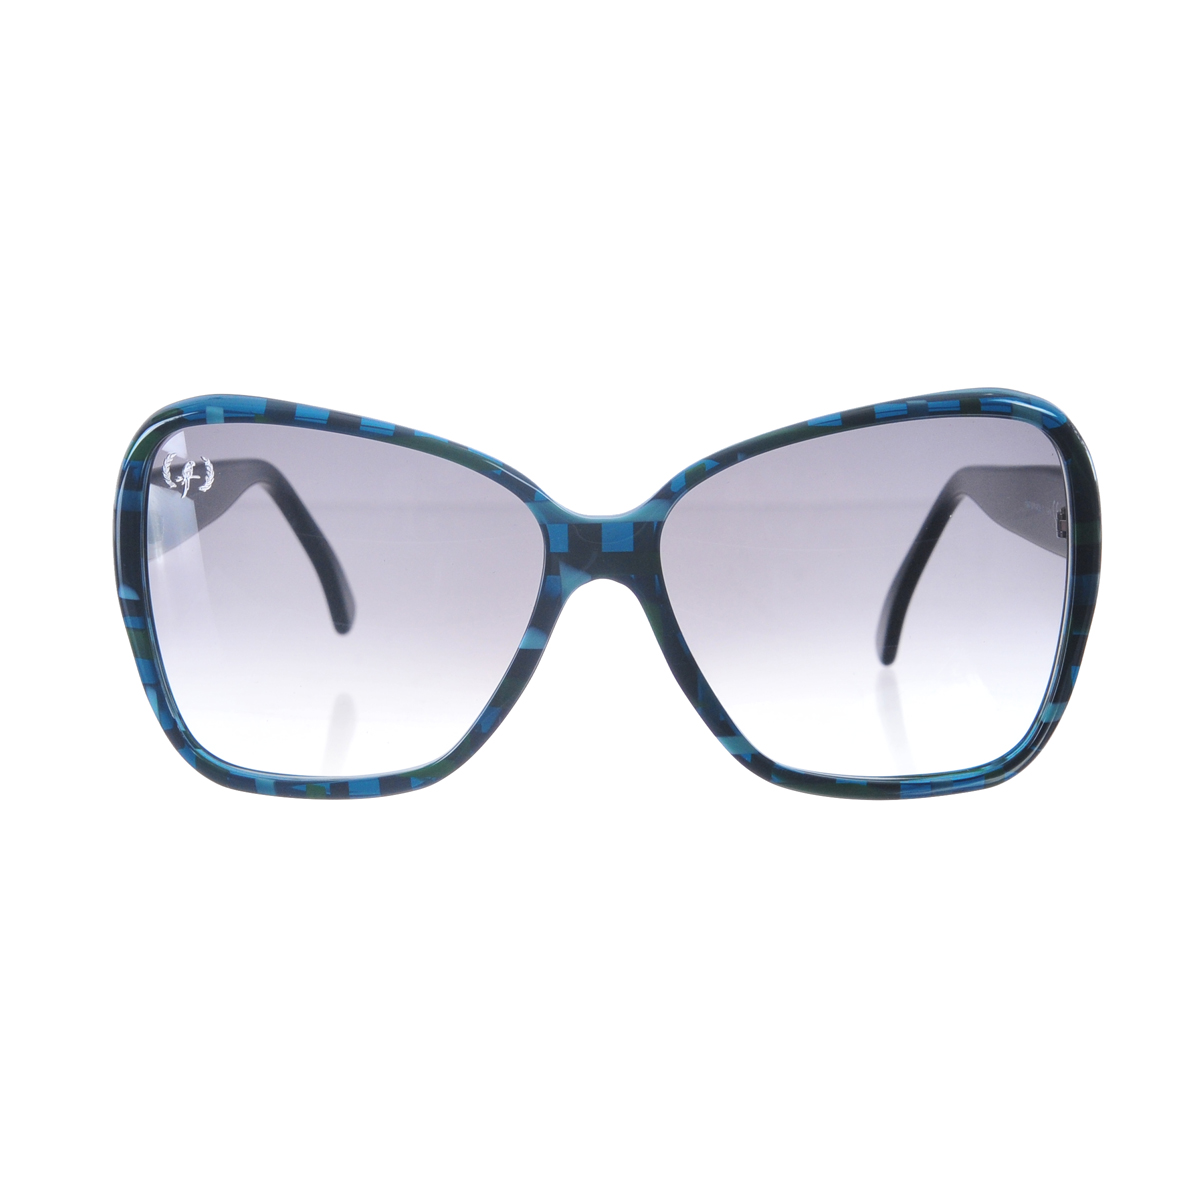 [ACCESSORIES / SUNGLASSES ] MODEL3 (BLUE / MADE IN ITALY)